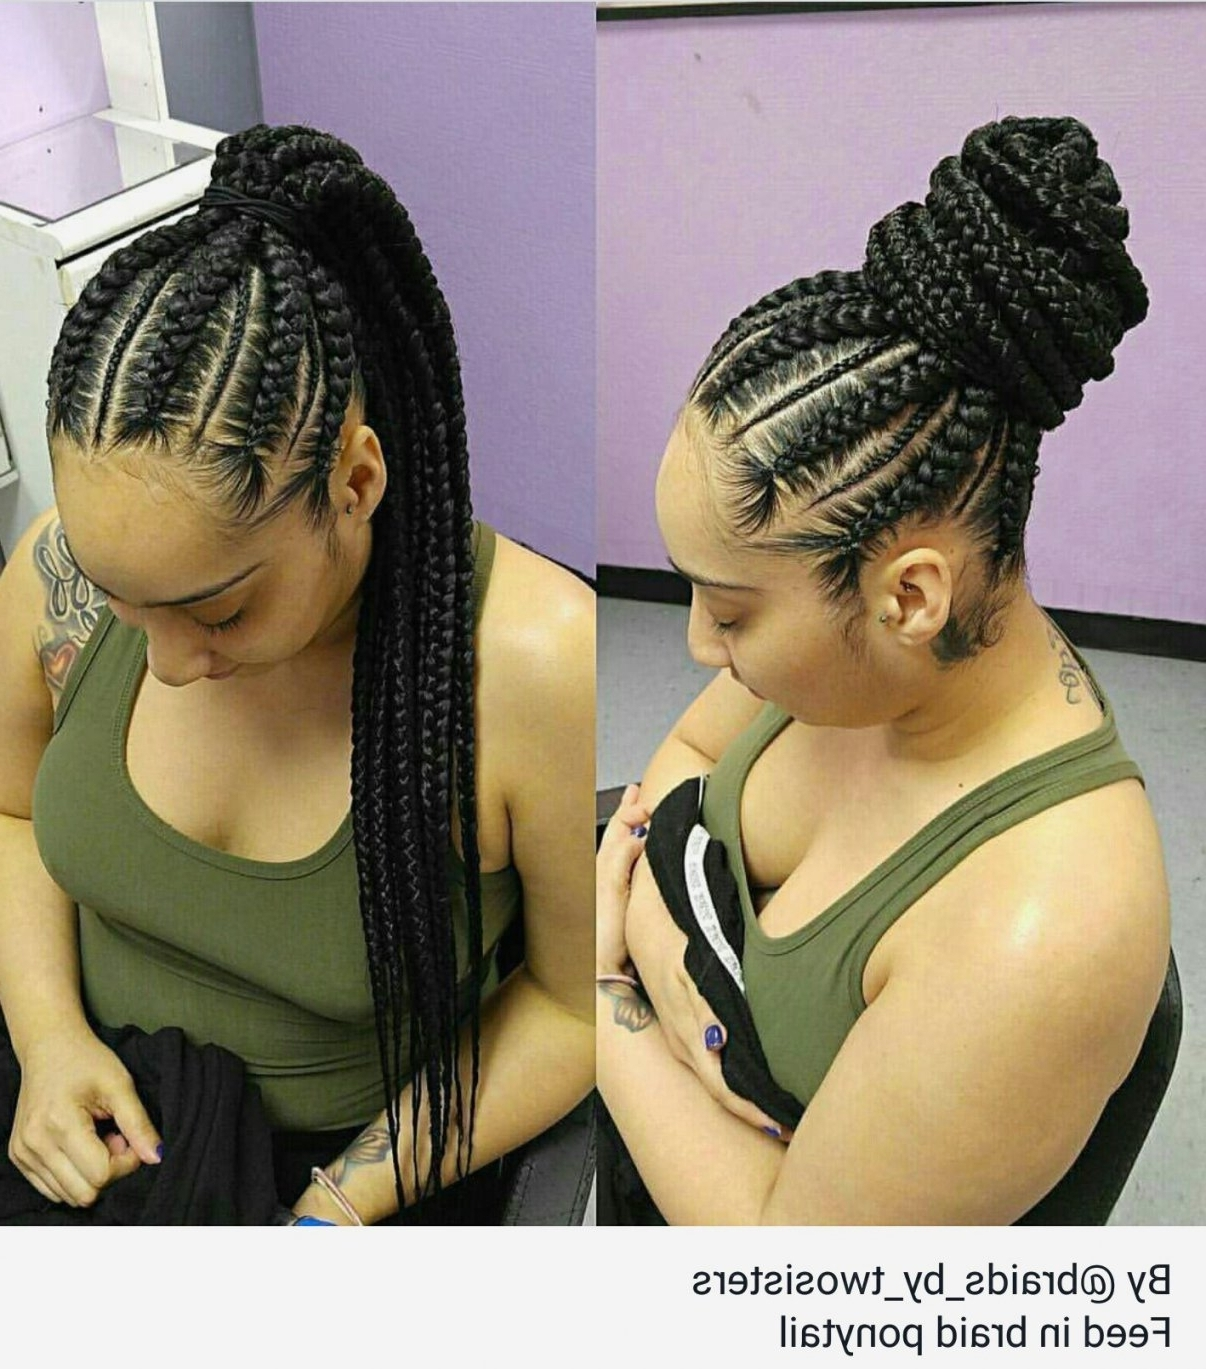 Current Creative Cornrows Hairstyles Within Braid Hairstyles : Creative Cornrow Braided Updo Hairstyles You (View 10 of 15)